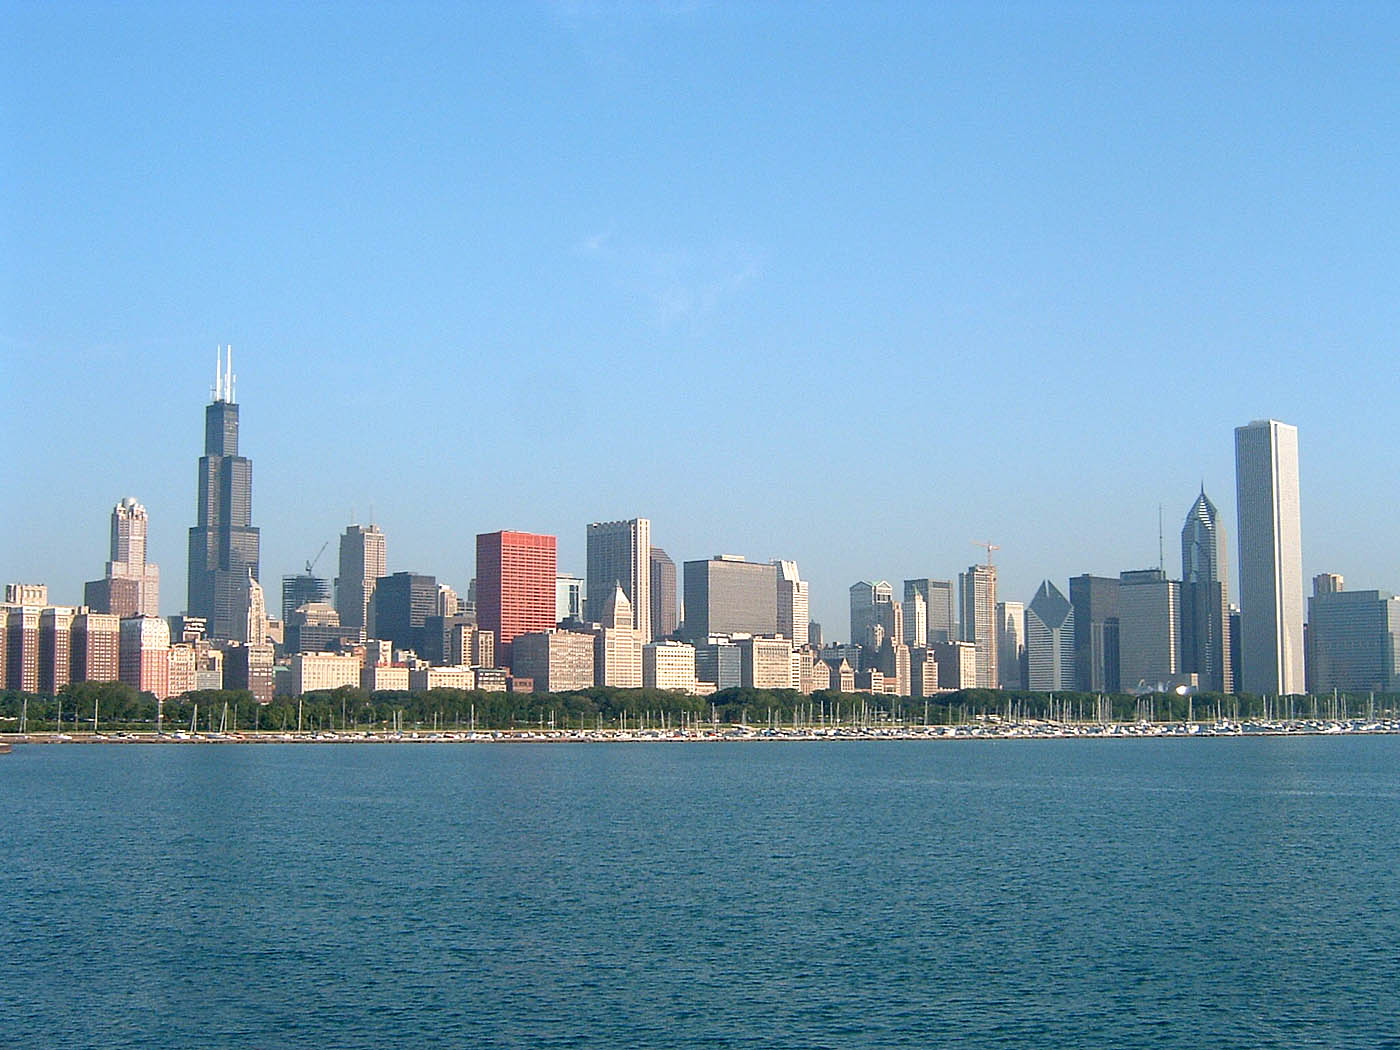 The 'Which Skyline Is This' Game-skyline2.jpg